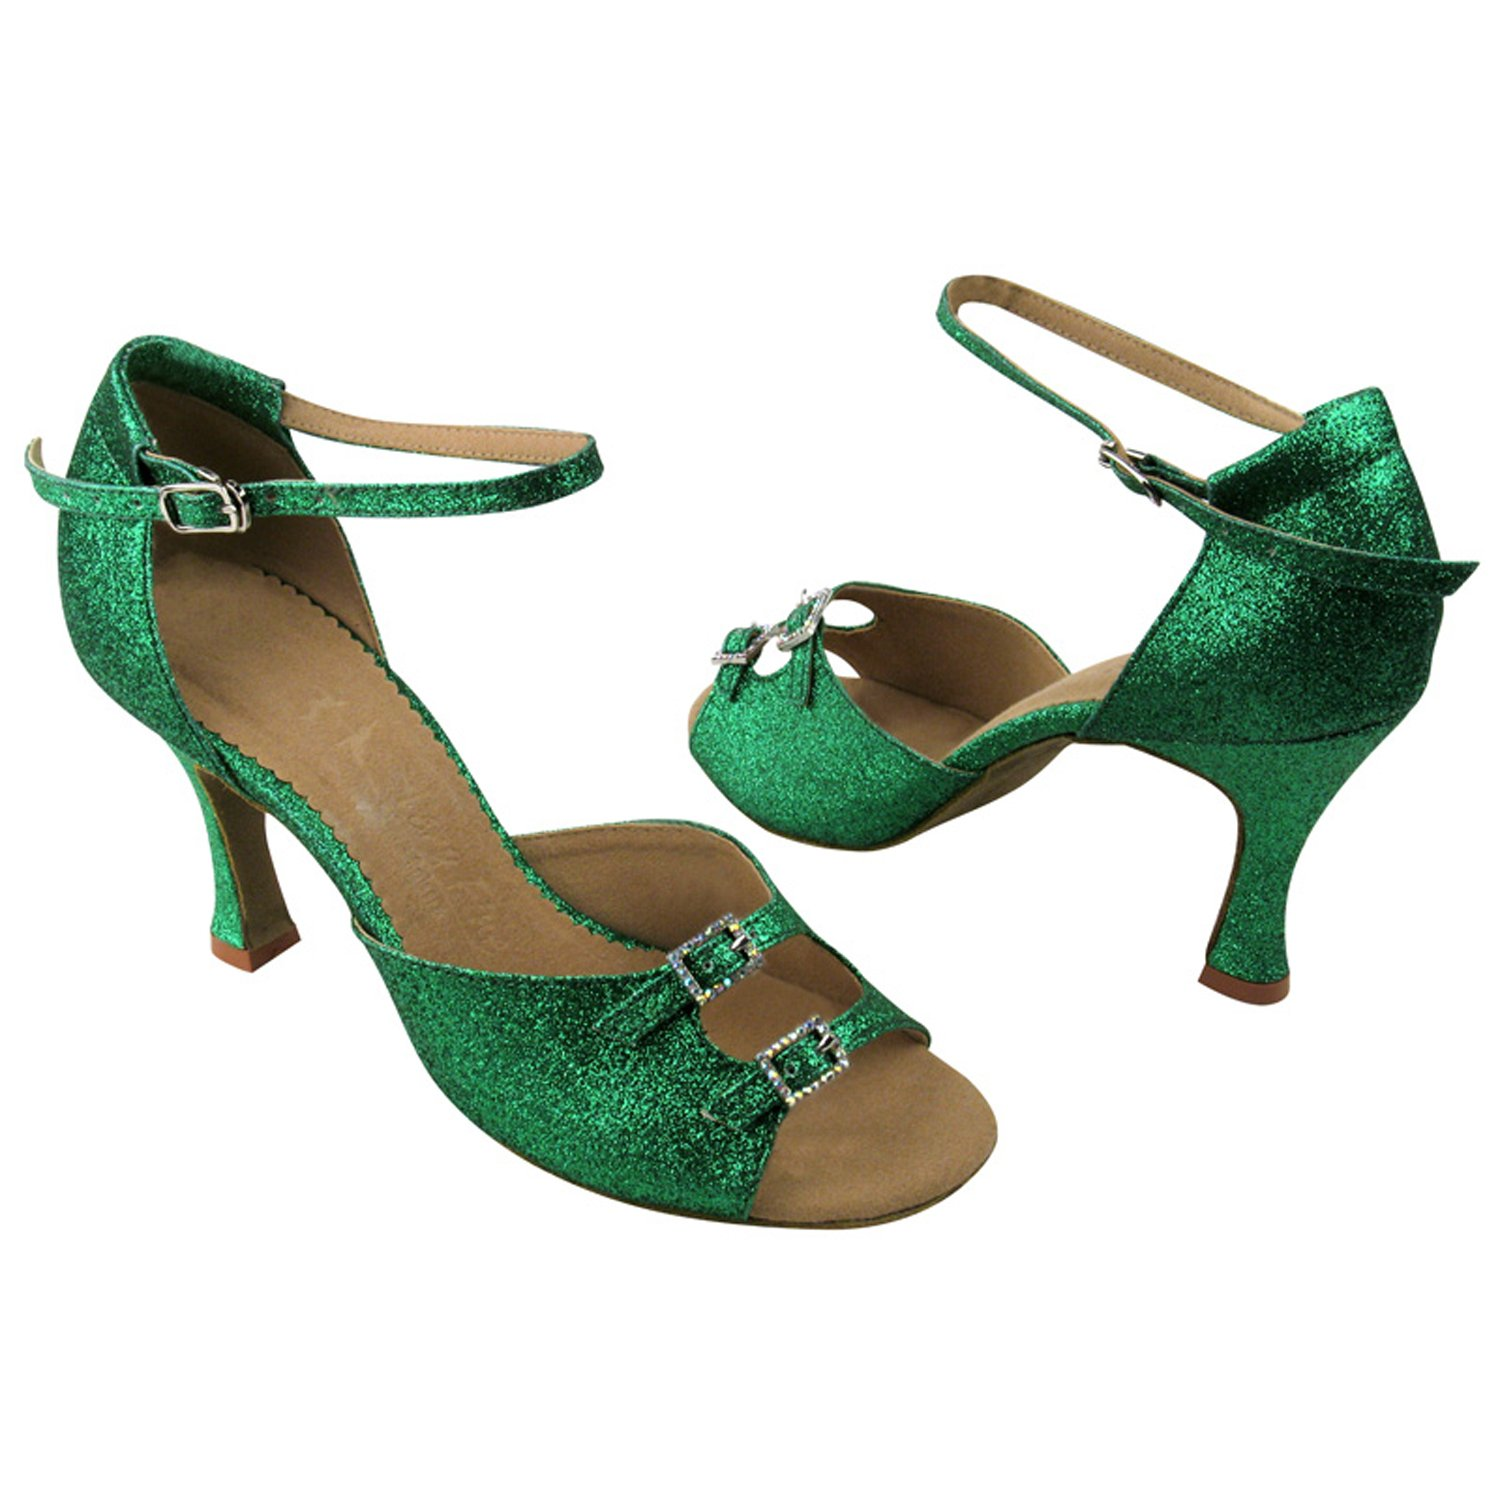 50 Shades Green /& Yellow Ballroom Latin Dance Shoes for Women Ballroom Salsa Wedding Clubing Swing